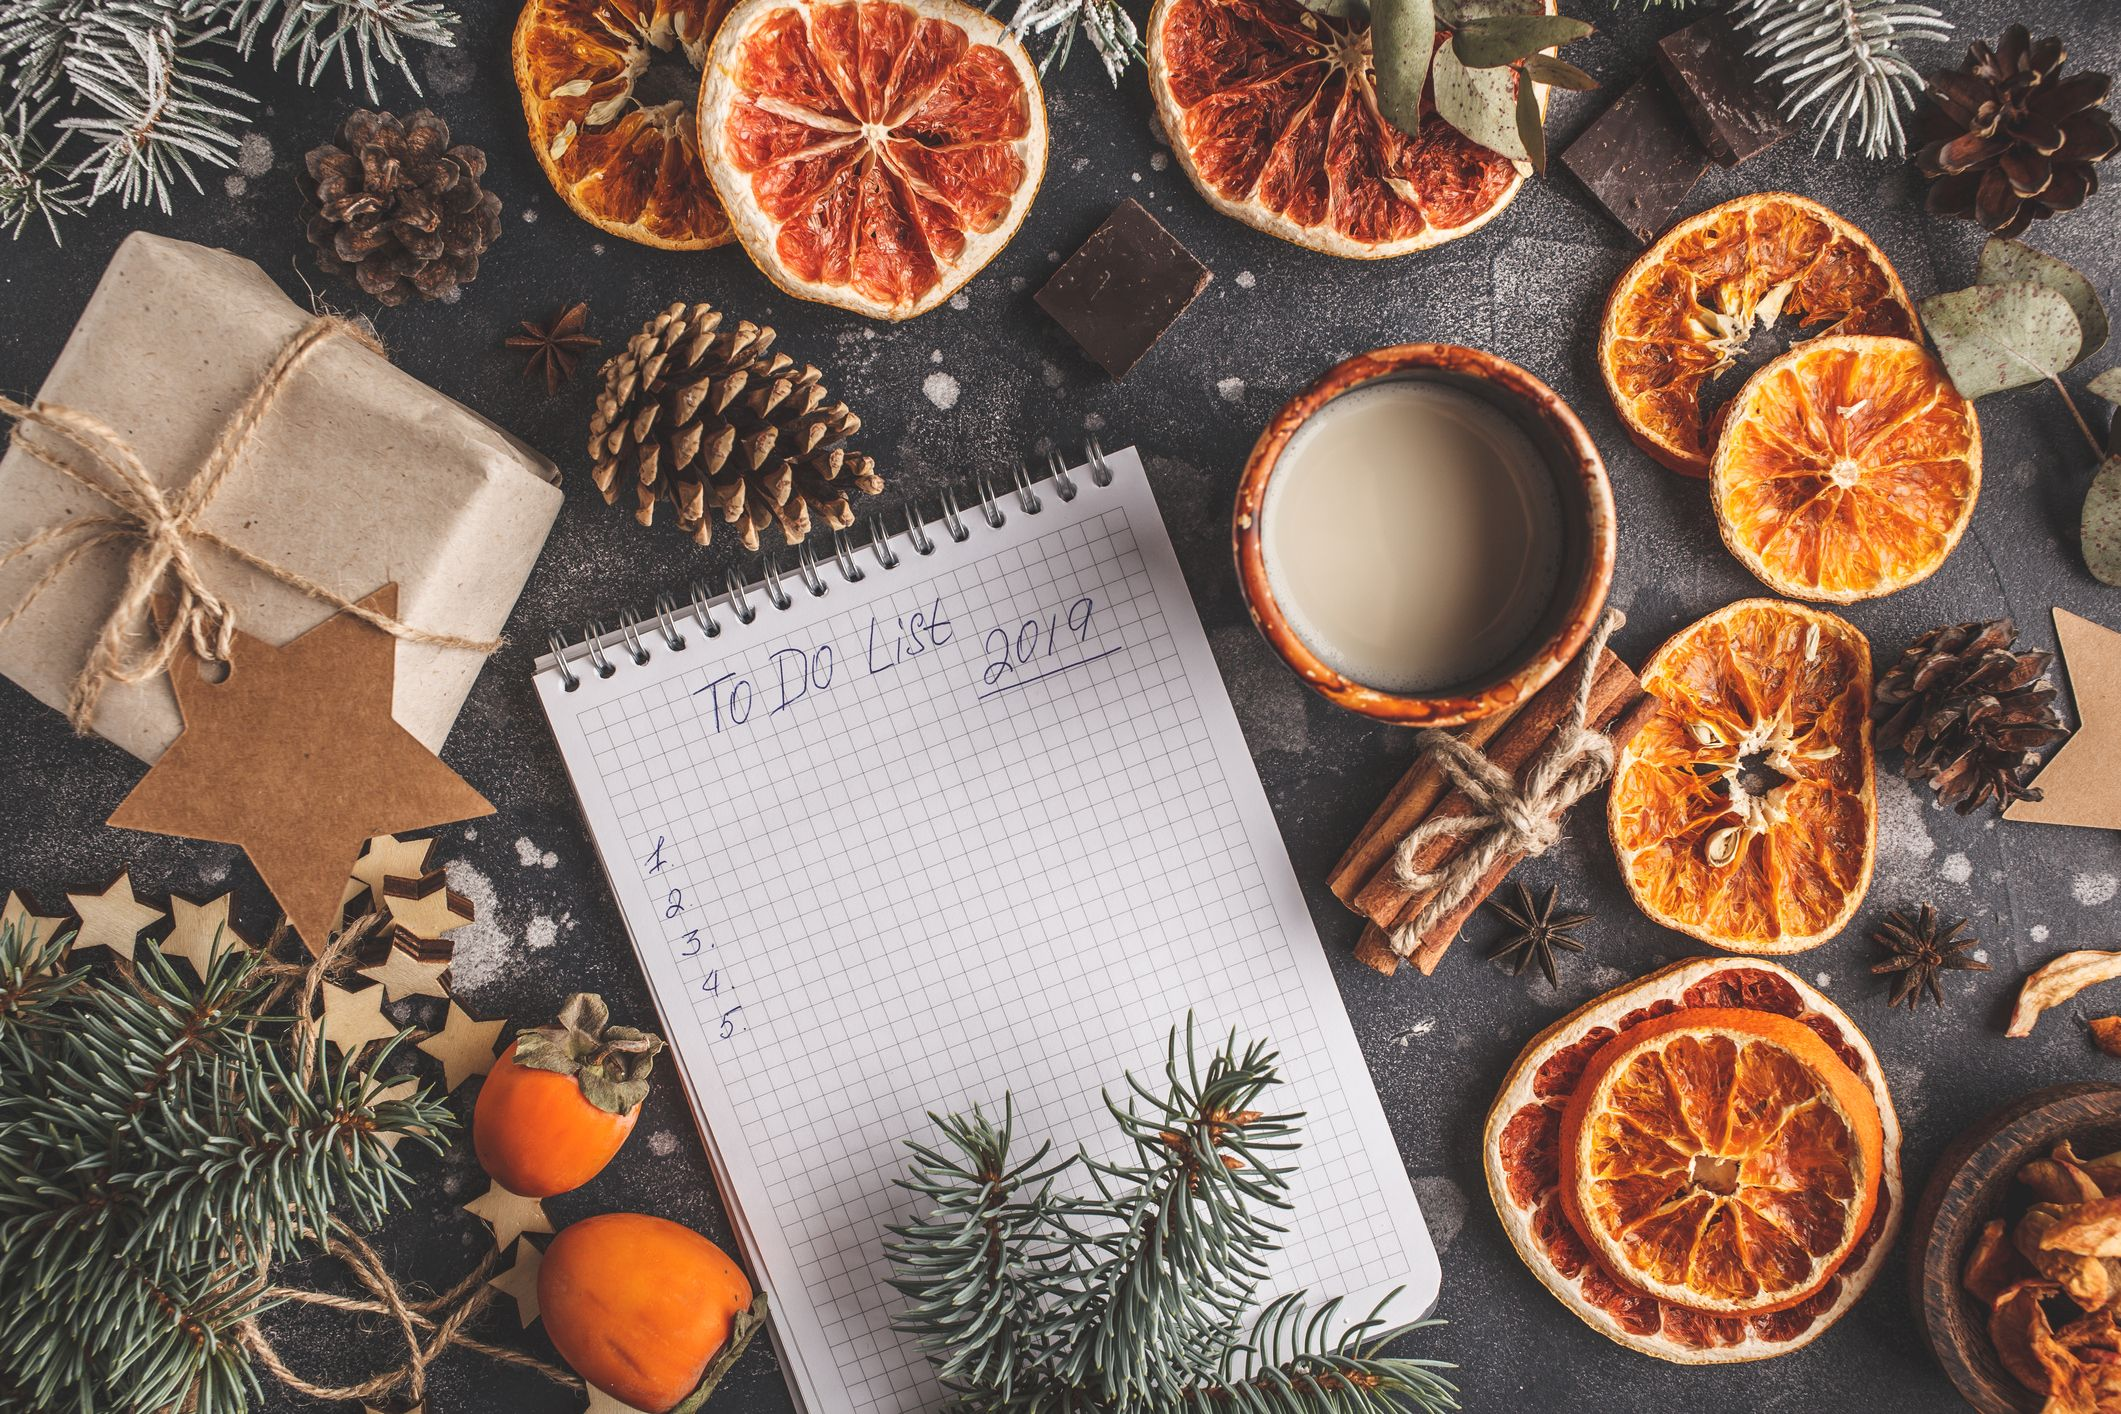 A complete Christmas to do list to get you organised this year